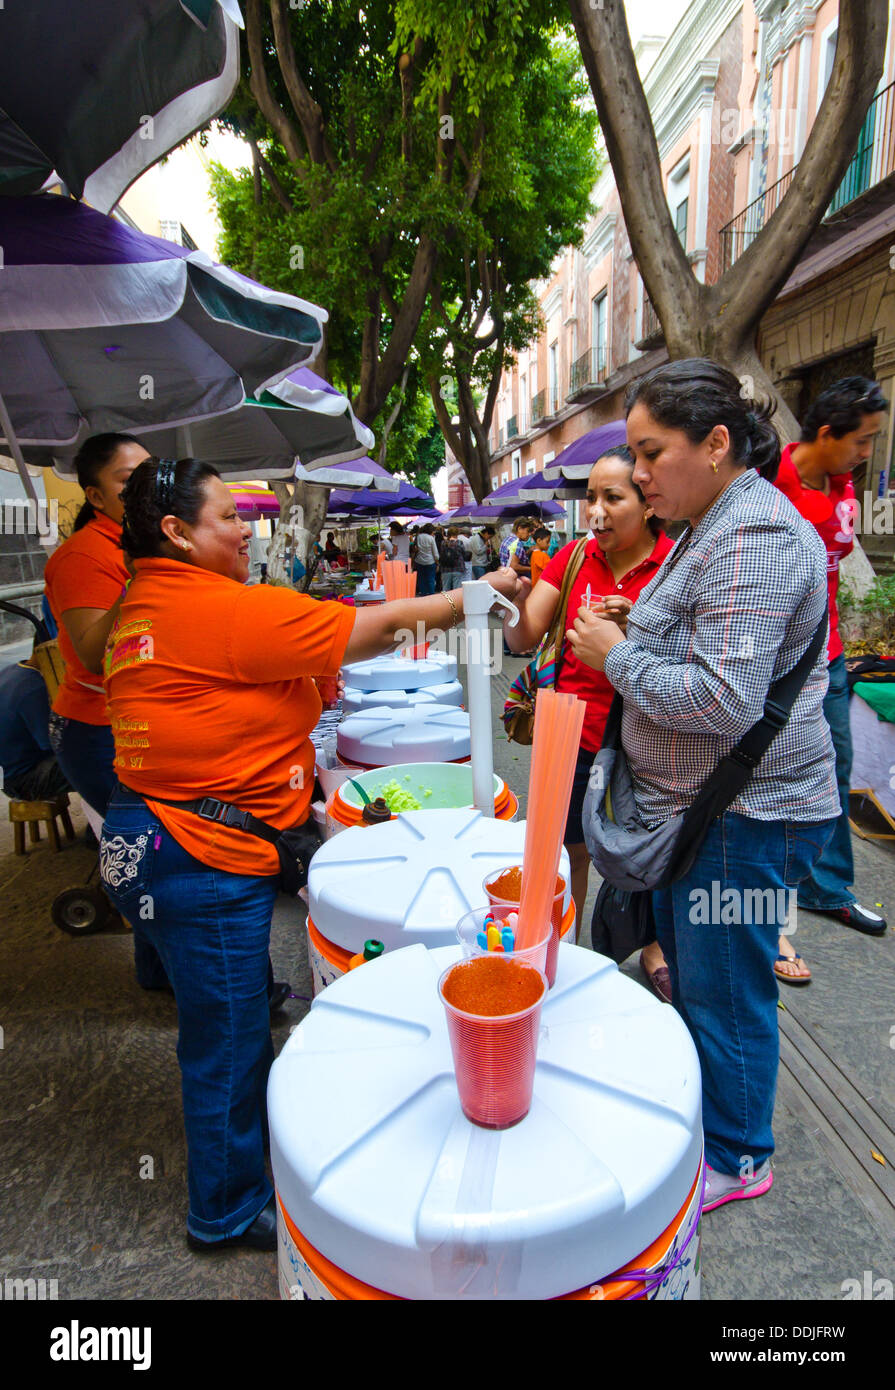 Women selling traditional thirst quenching ices and slushies in the streets of Centro Historico in Puebla, . - Stock Image